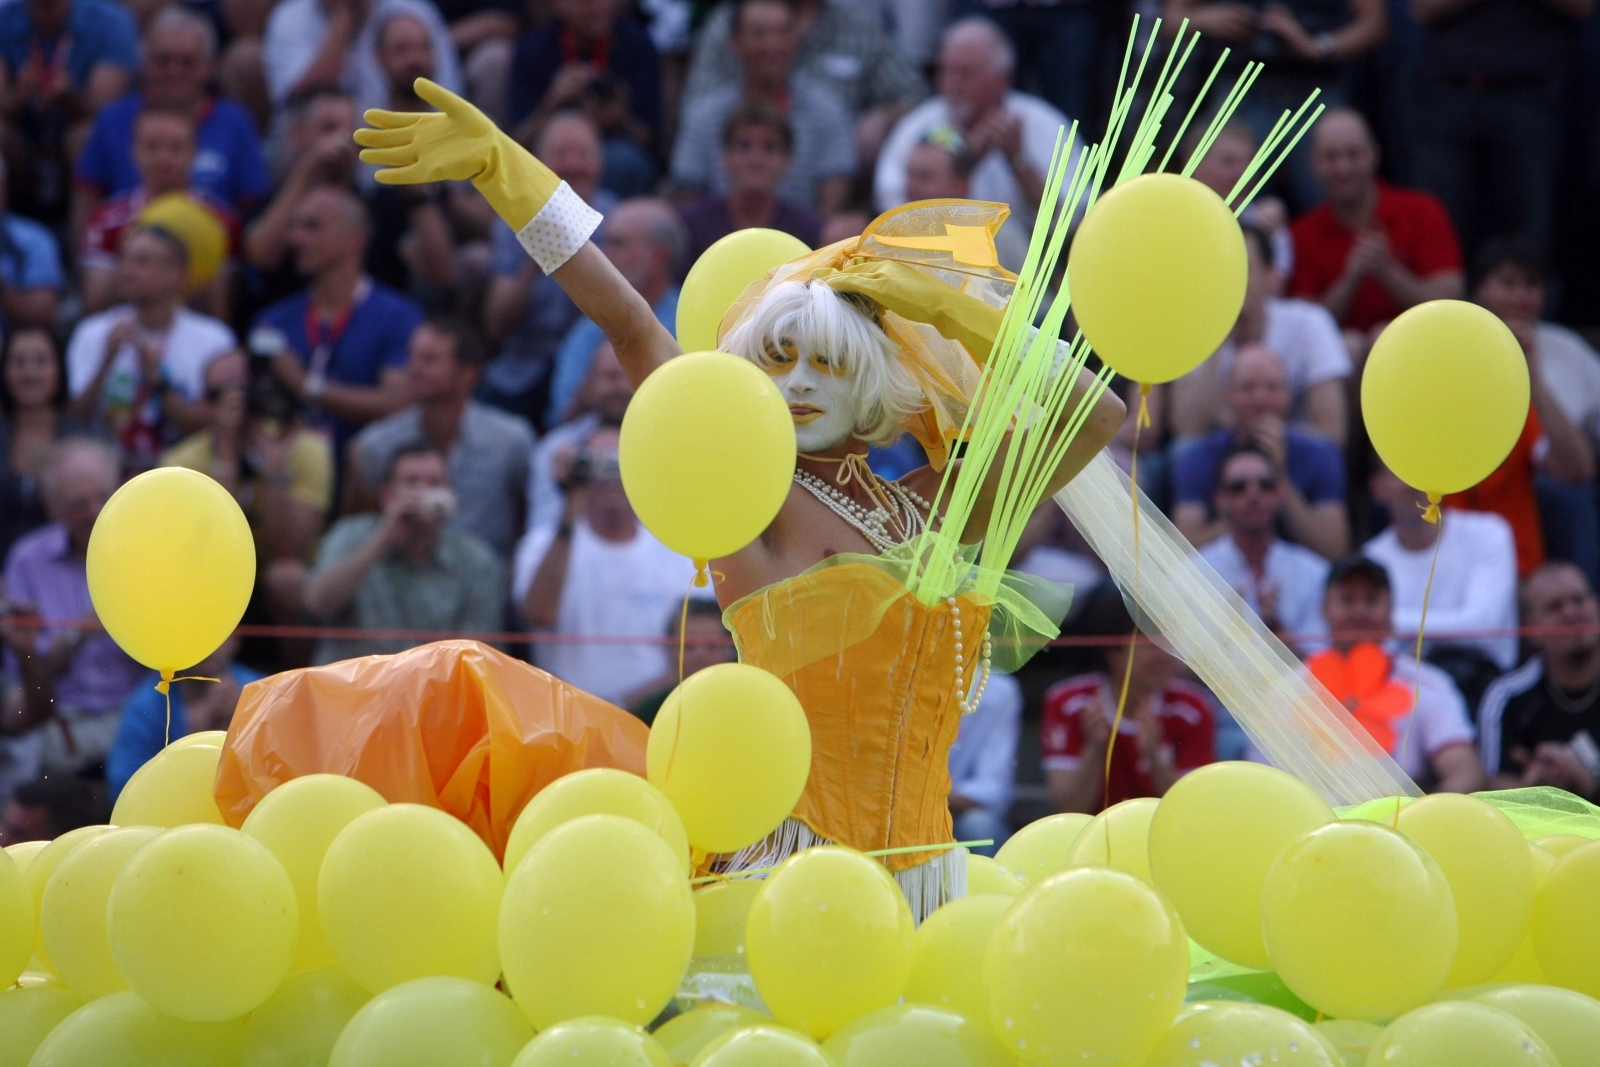 A man performs in the freestyle competition of the waterballet event on the pink friday party of the Gay Games in Cologne 2010